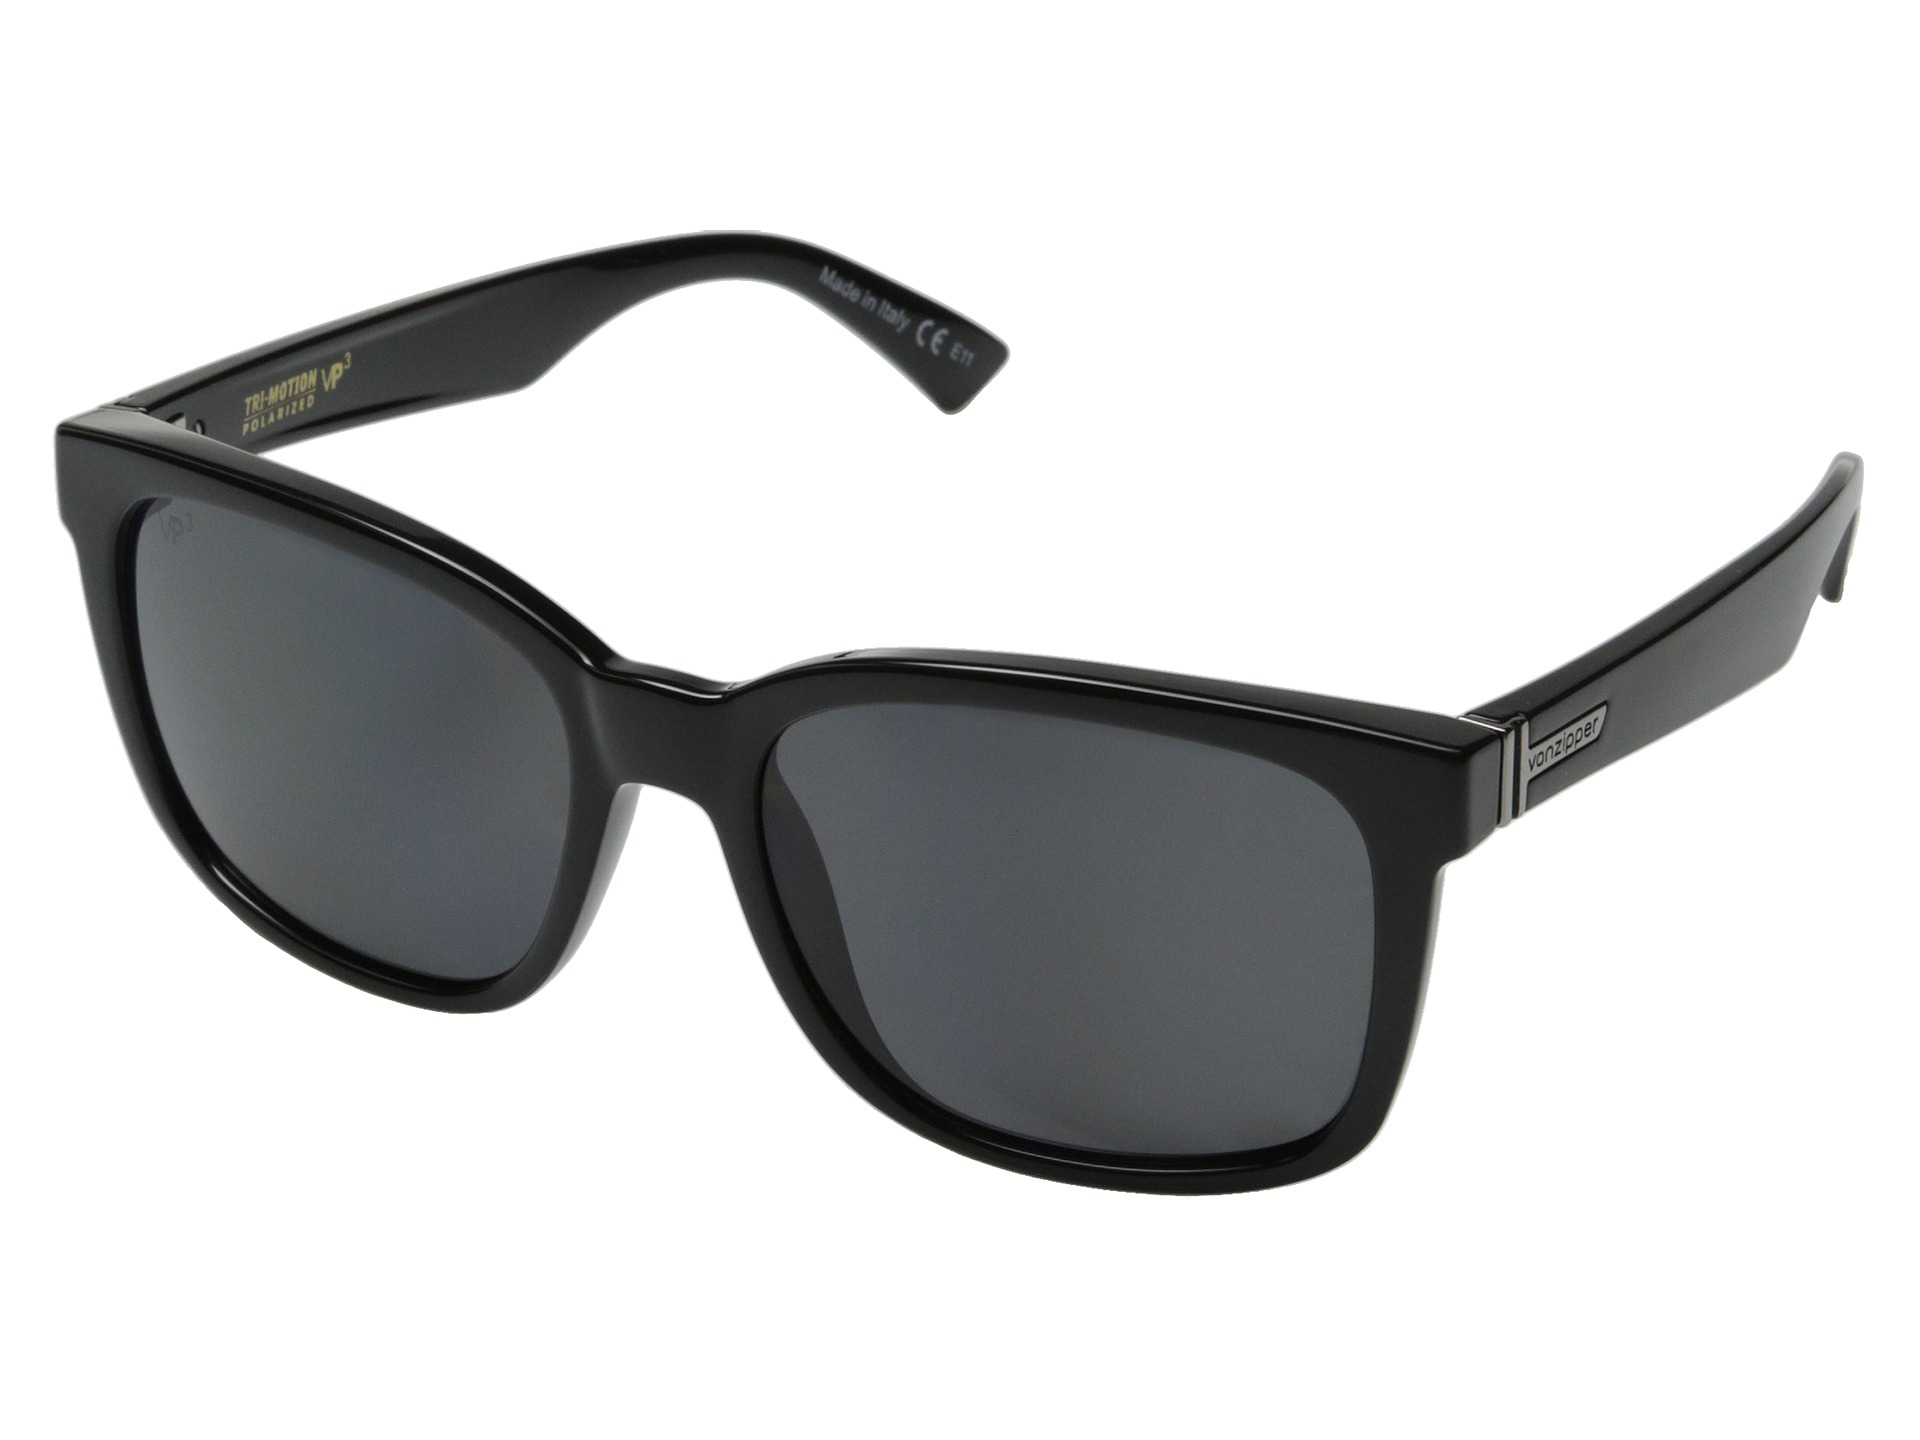 Best Way To Clean Polarized Sunglasses